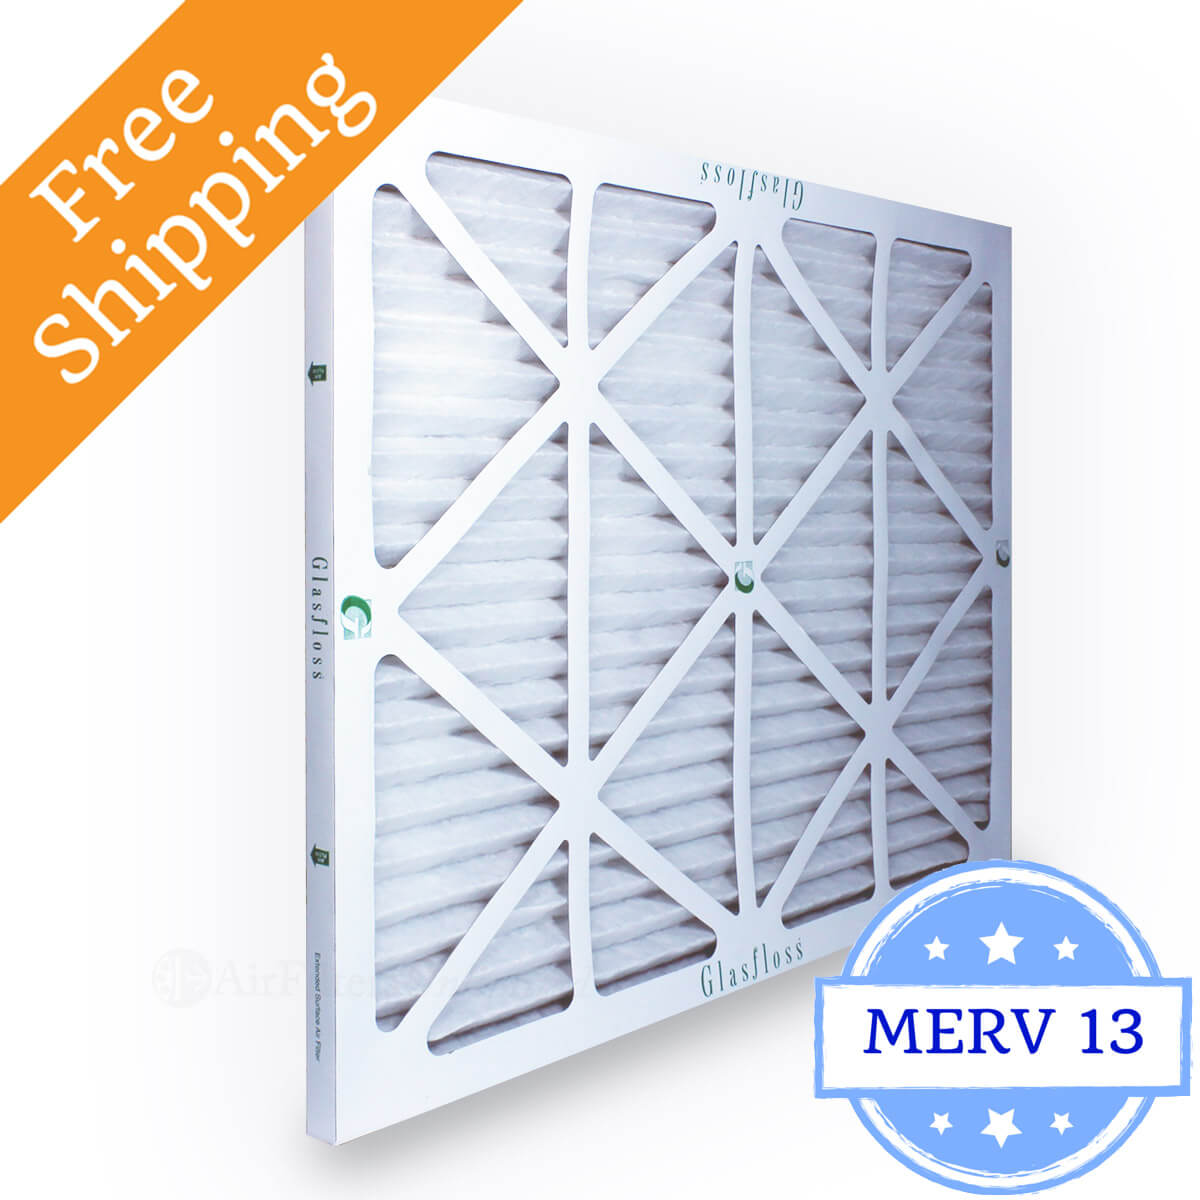 Glasfloss 12x24x1 Air Filter MR-13 Series